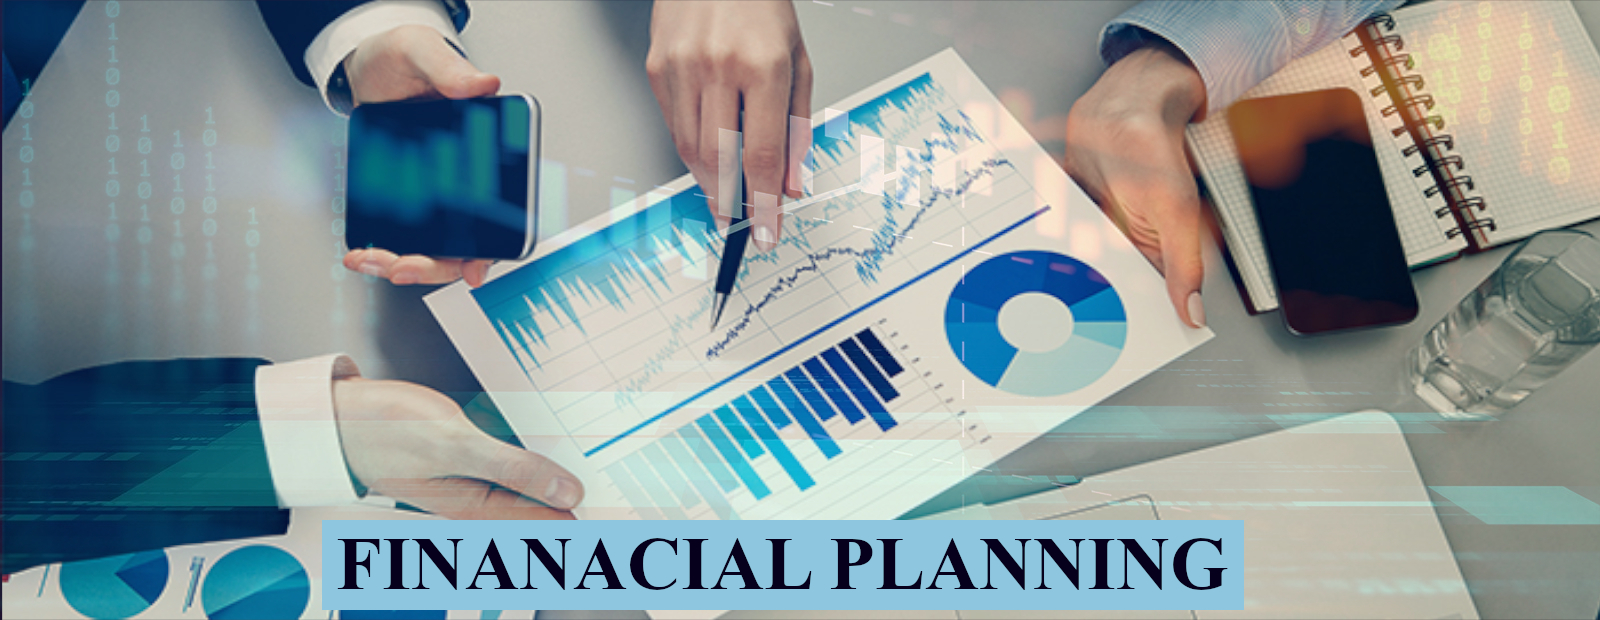 Financial Planning Experts